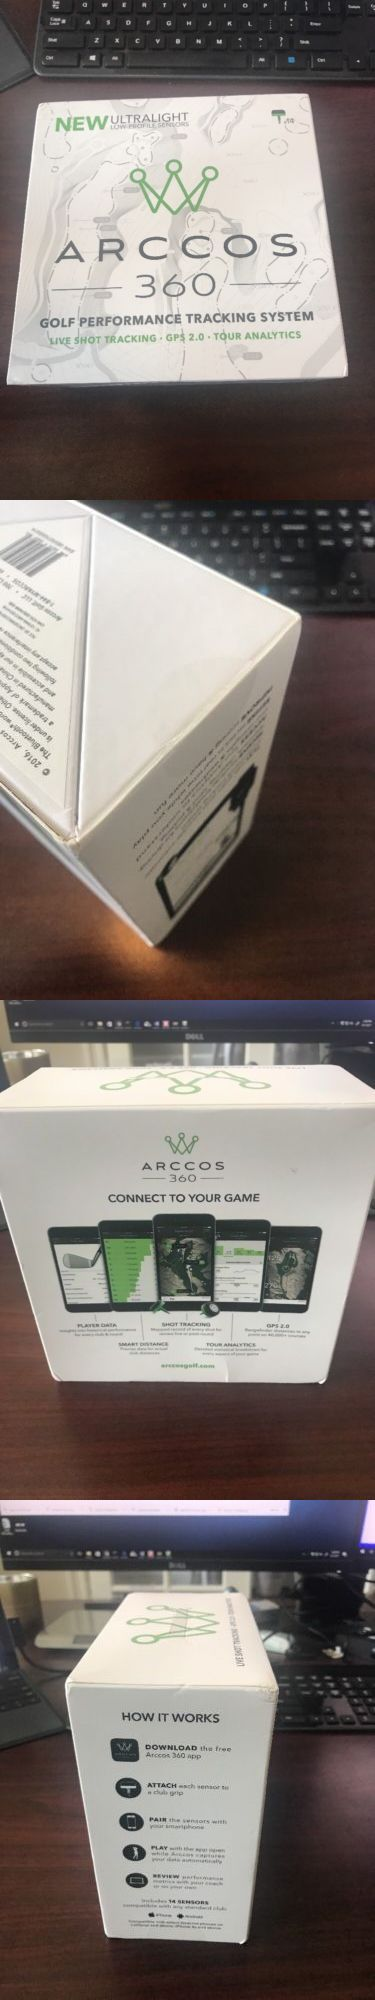 Other Golf Training Aids 14109: Arccos Golf 360 Performance Tracking Gps System New In Box -> BUY IT NOW ONLY: $229 on eBay!